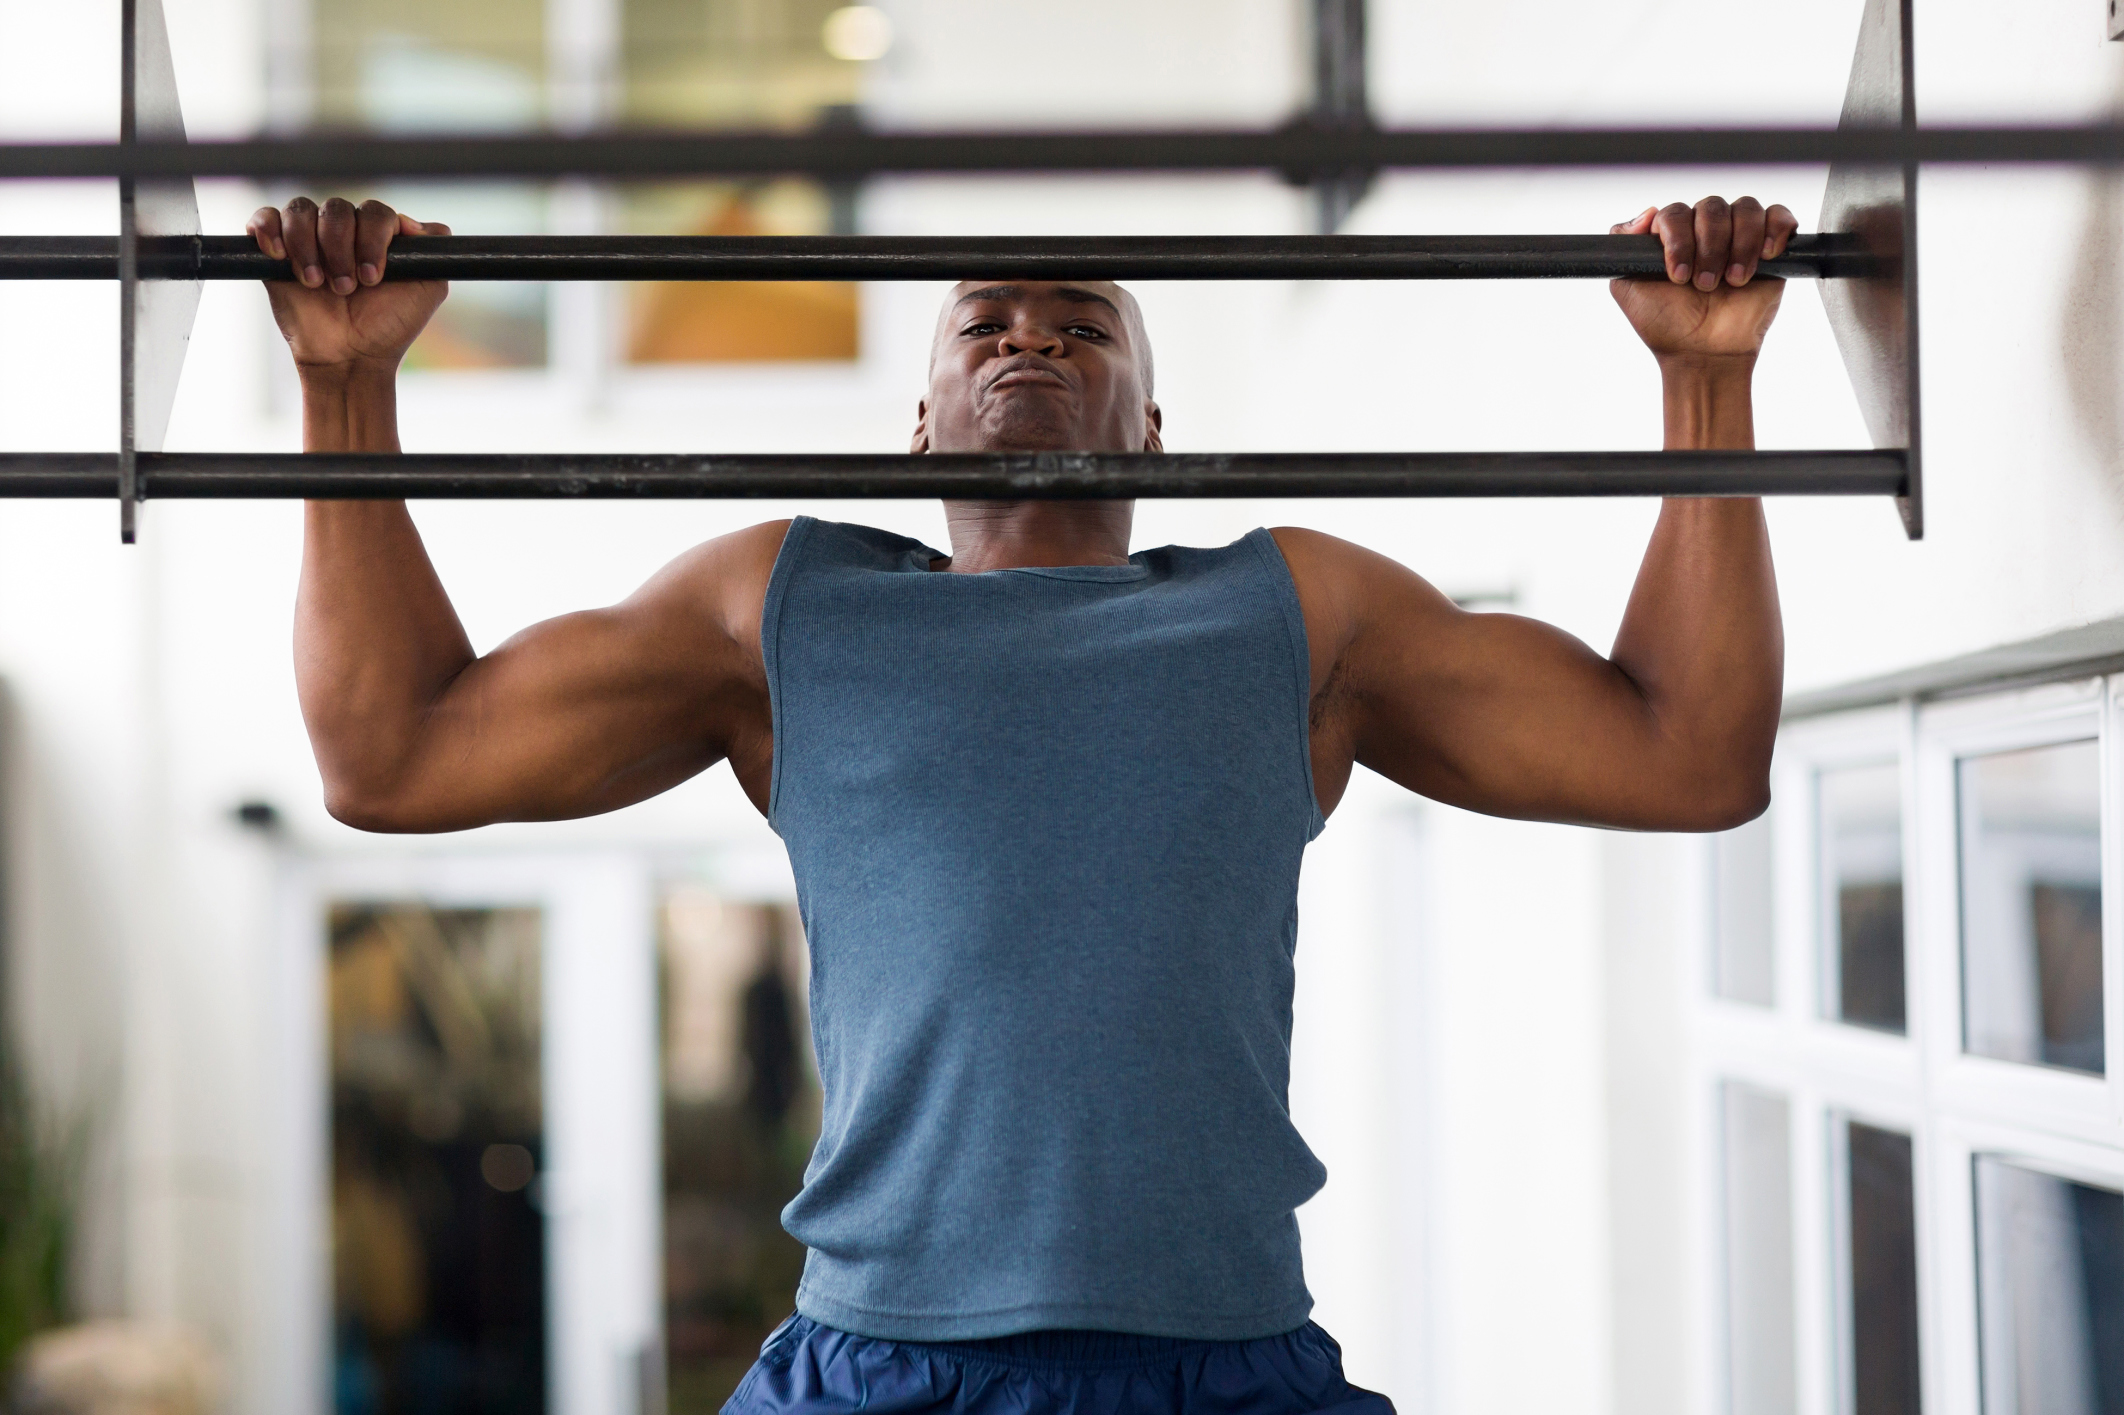 How to properly pull on the bar with the maximum benefit